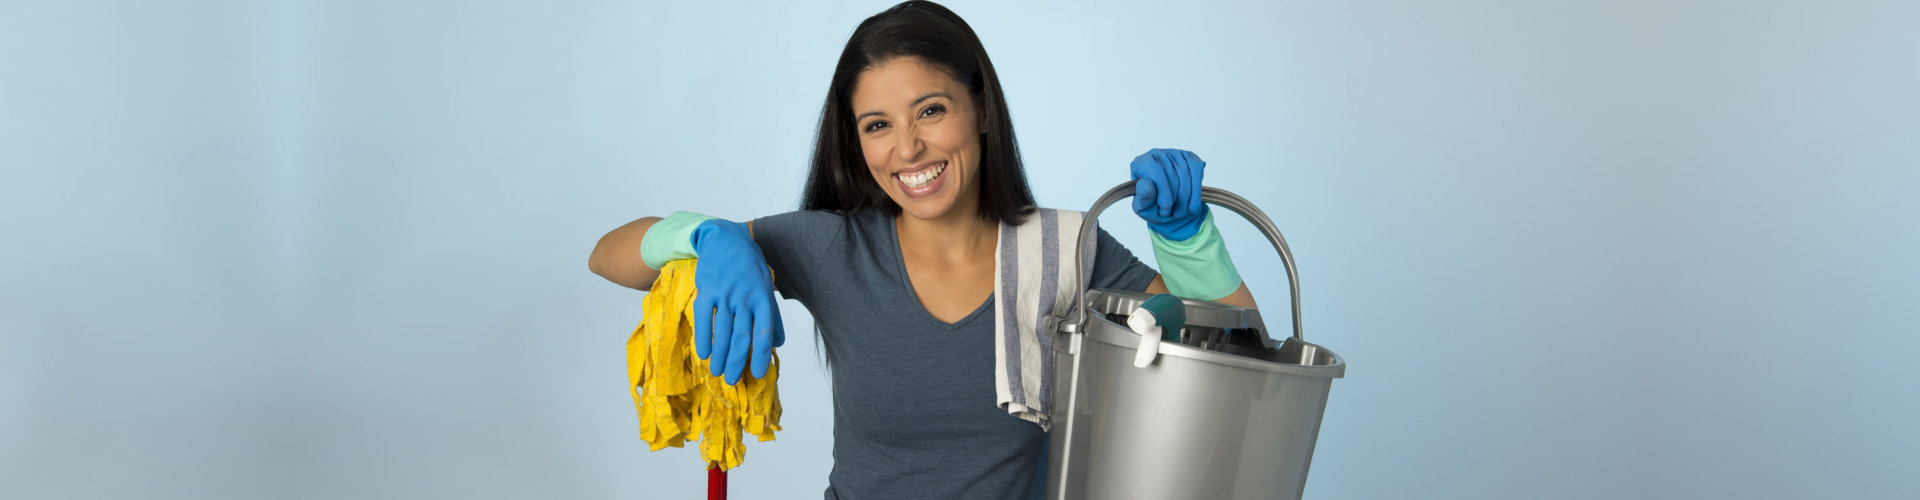 a lady janitor smiling